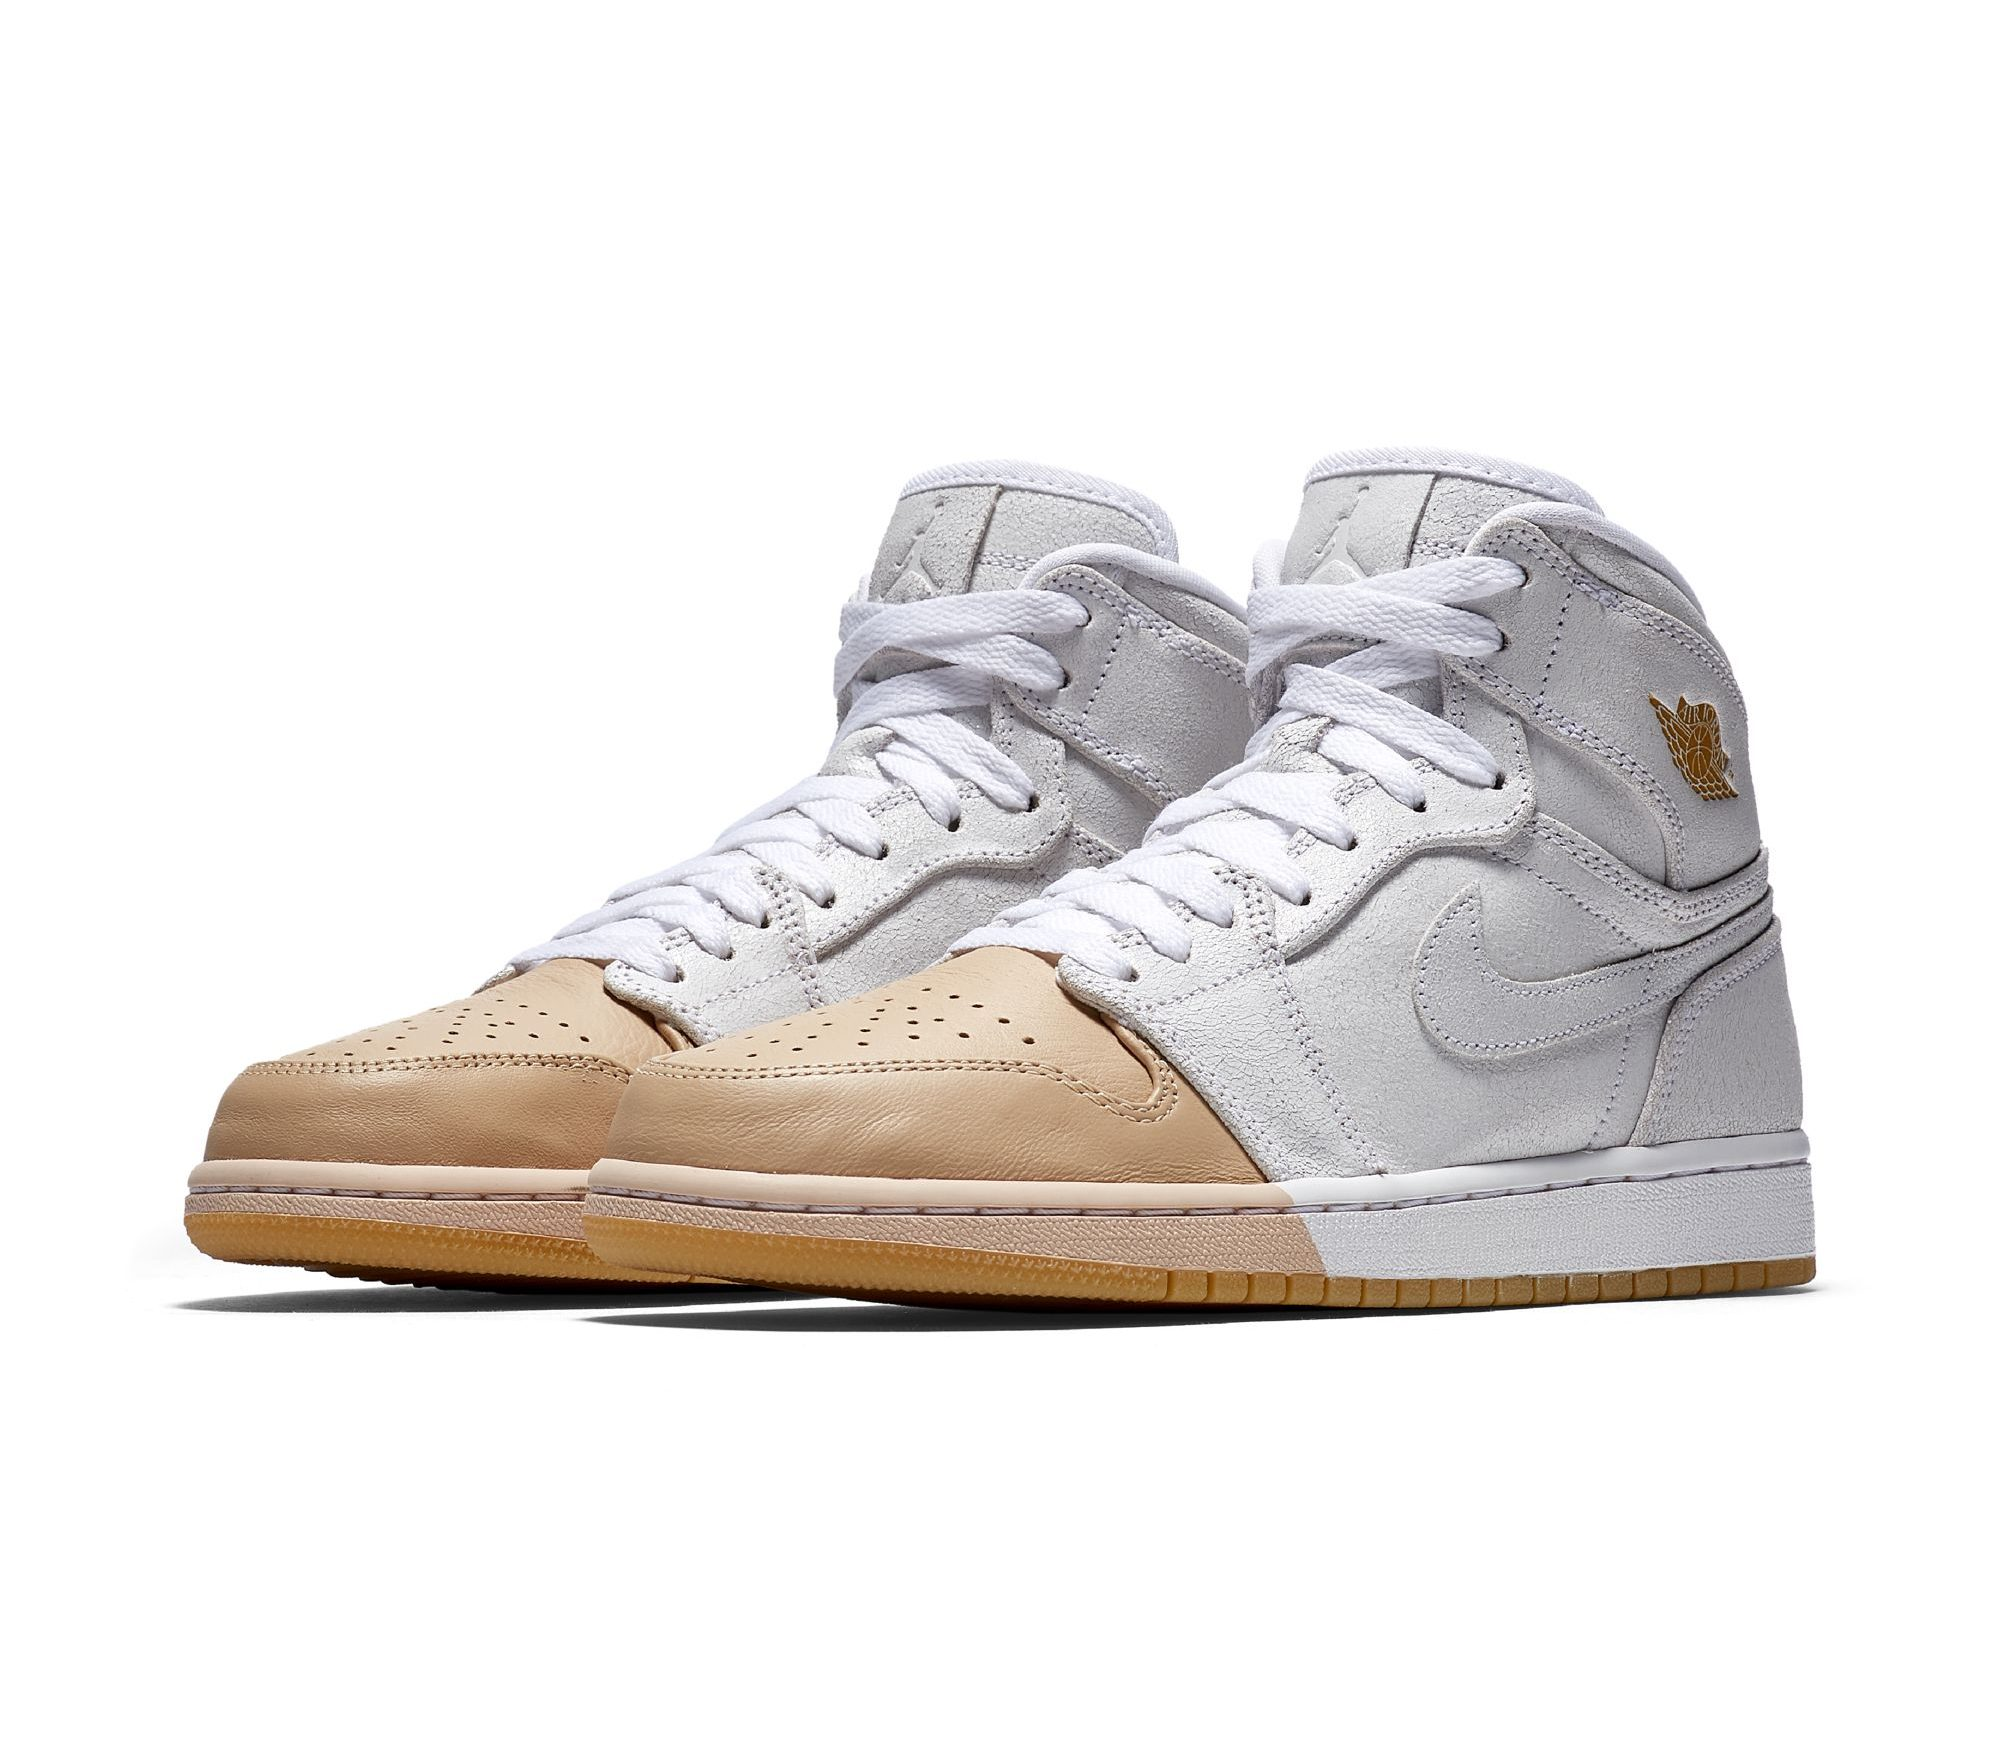 differently 94f54 bed17 A Pair of Premium Air Jordan 1 Retros for Women Drop Next ...